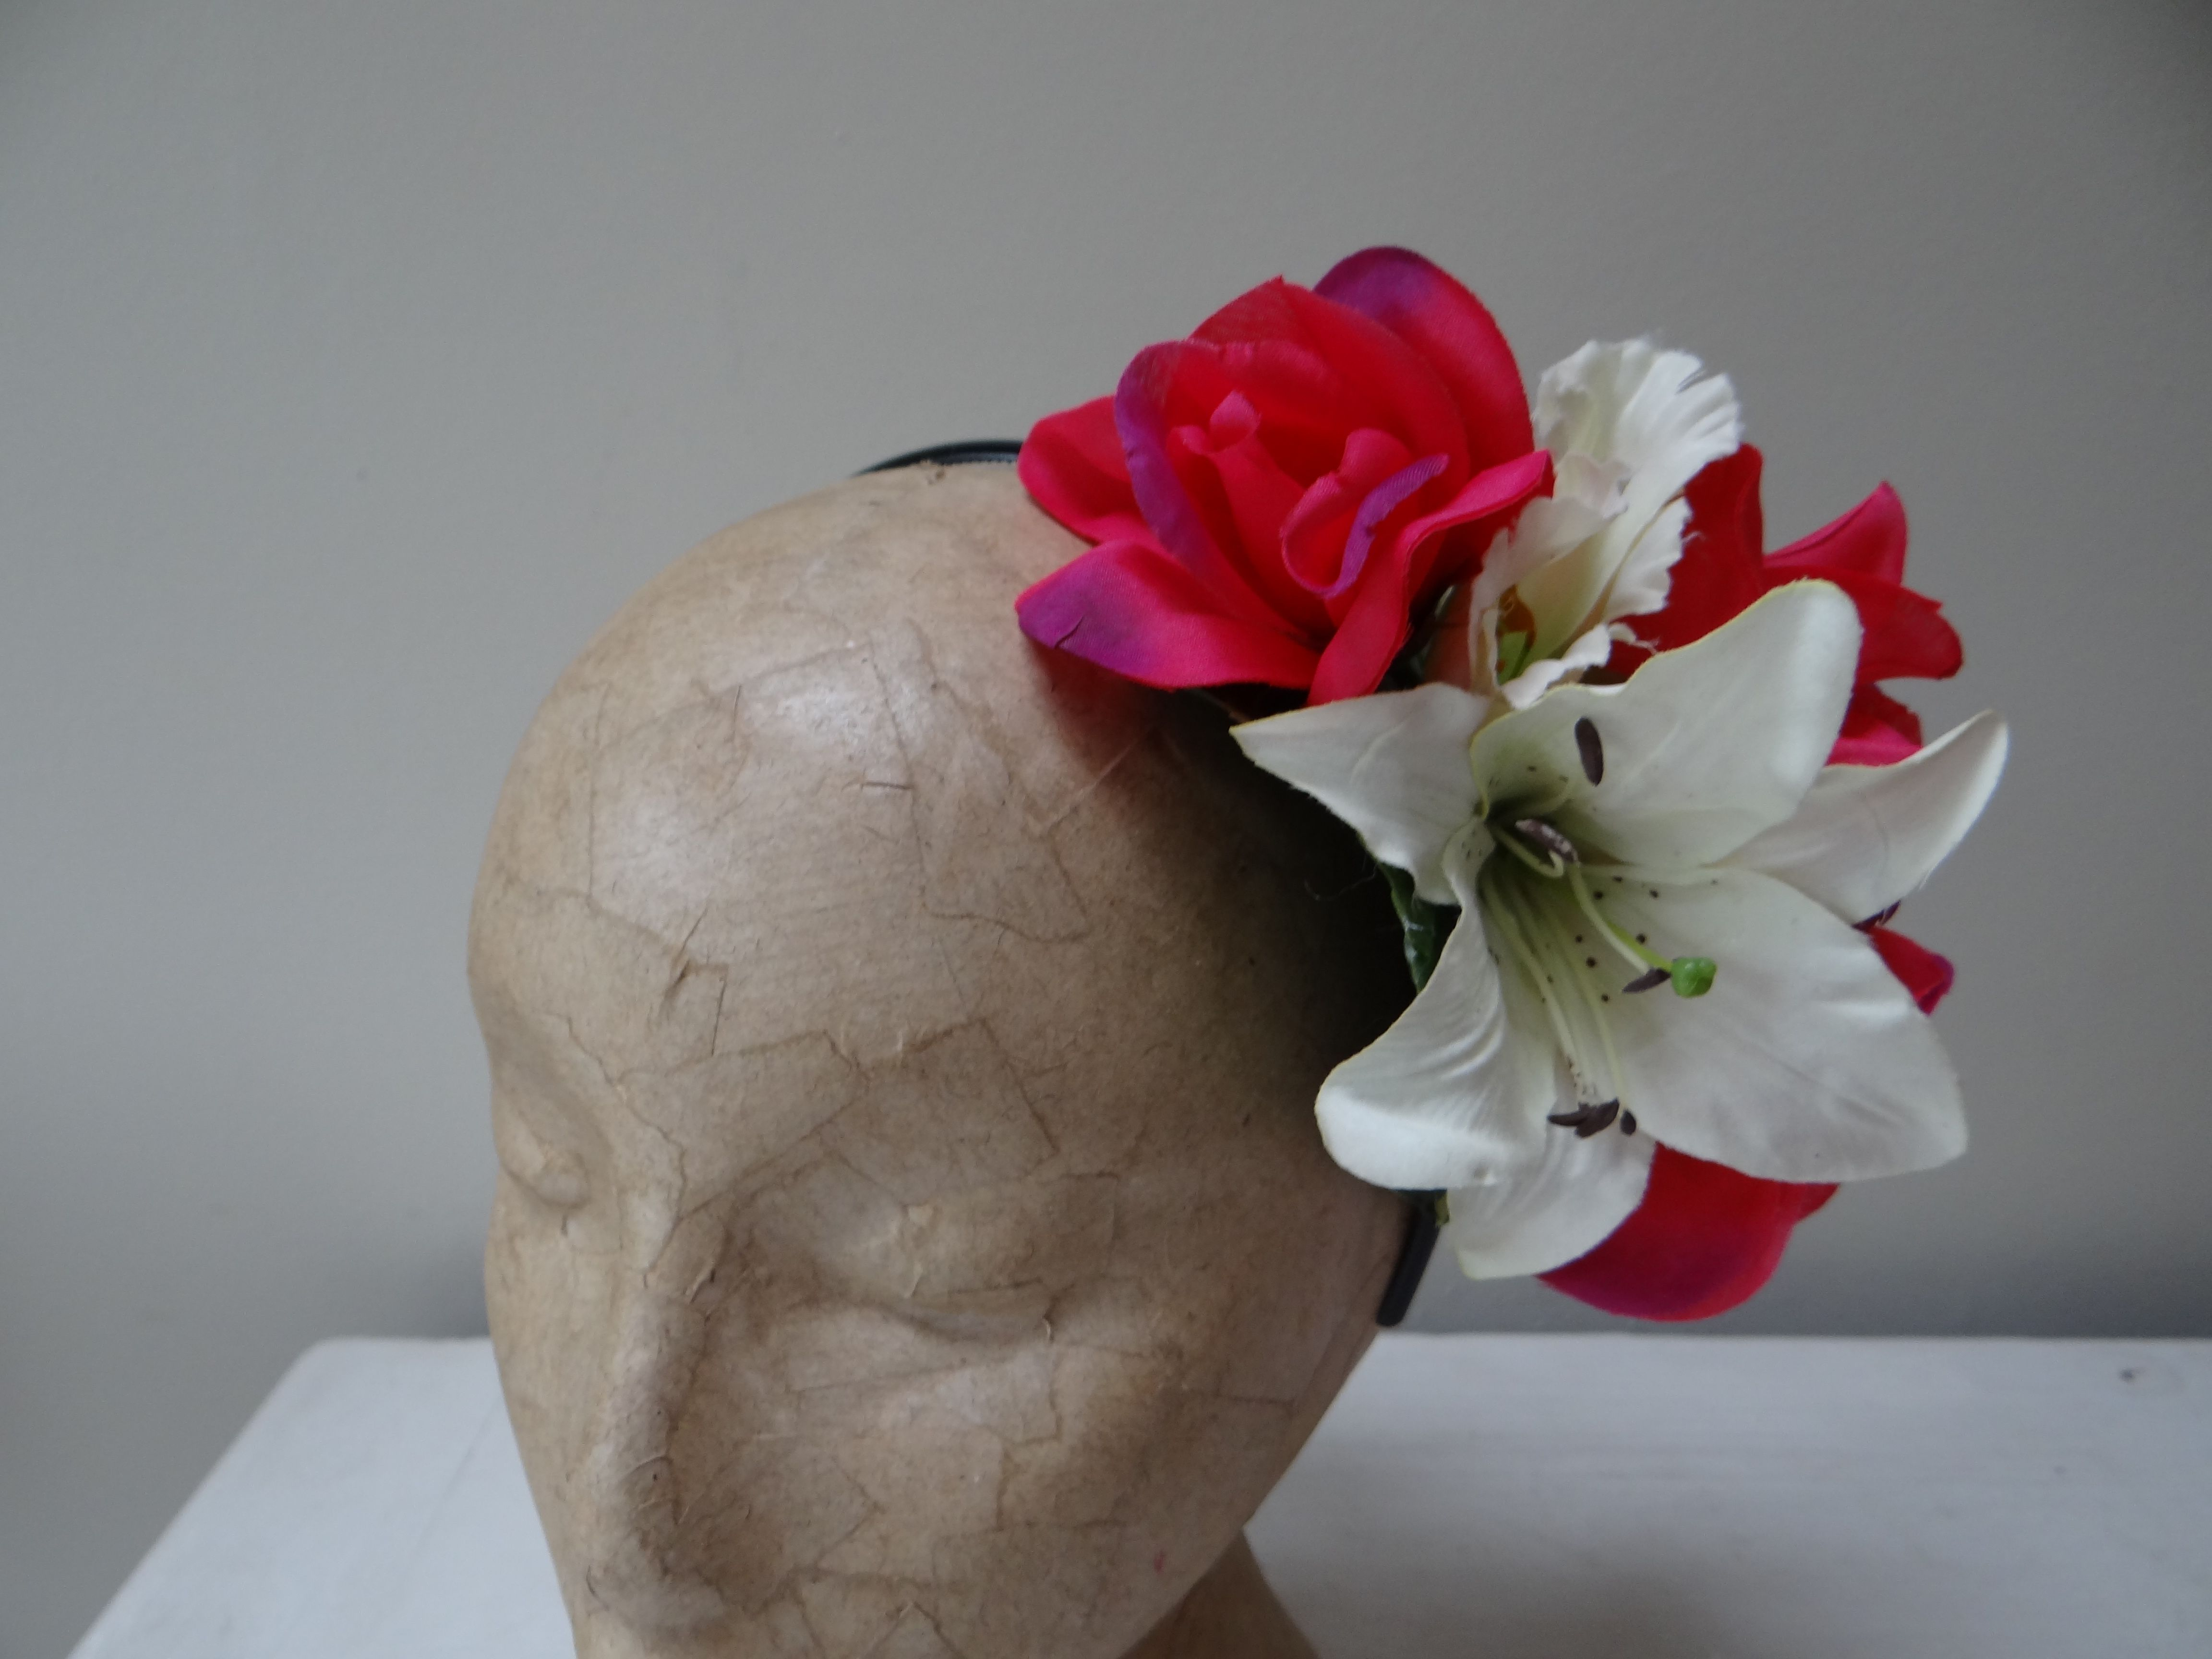 1950s Inspired White Lilly And Vibrant Redpink Rose Flower Crown